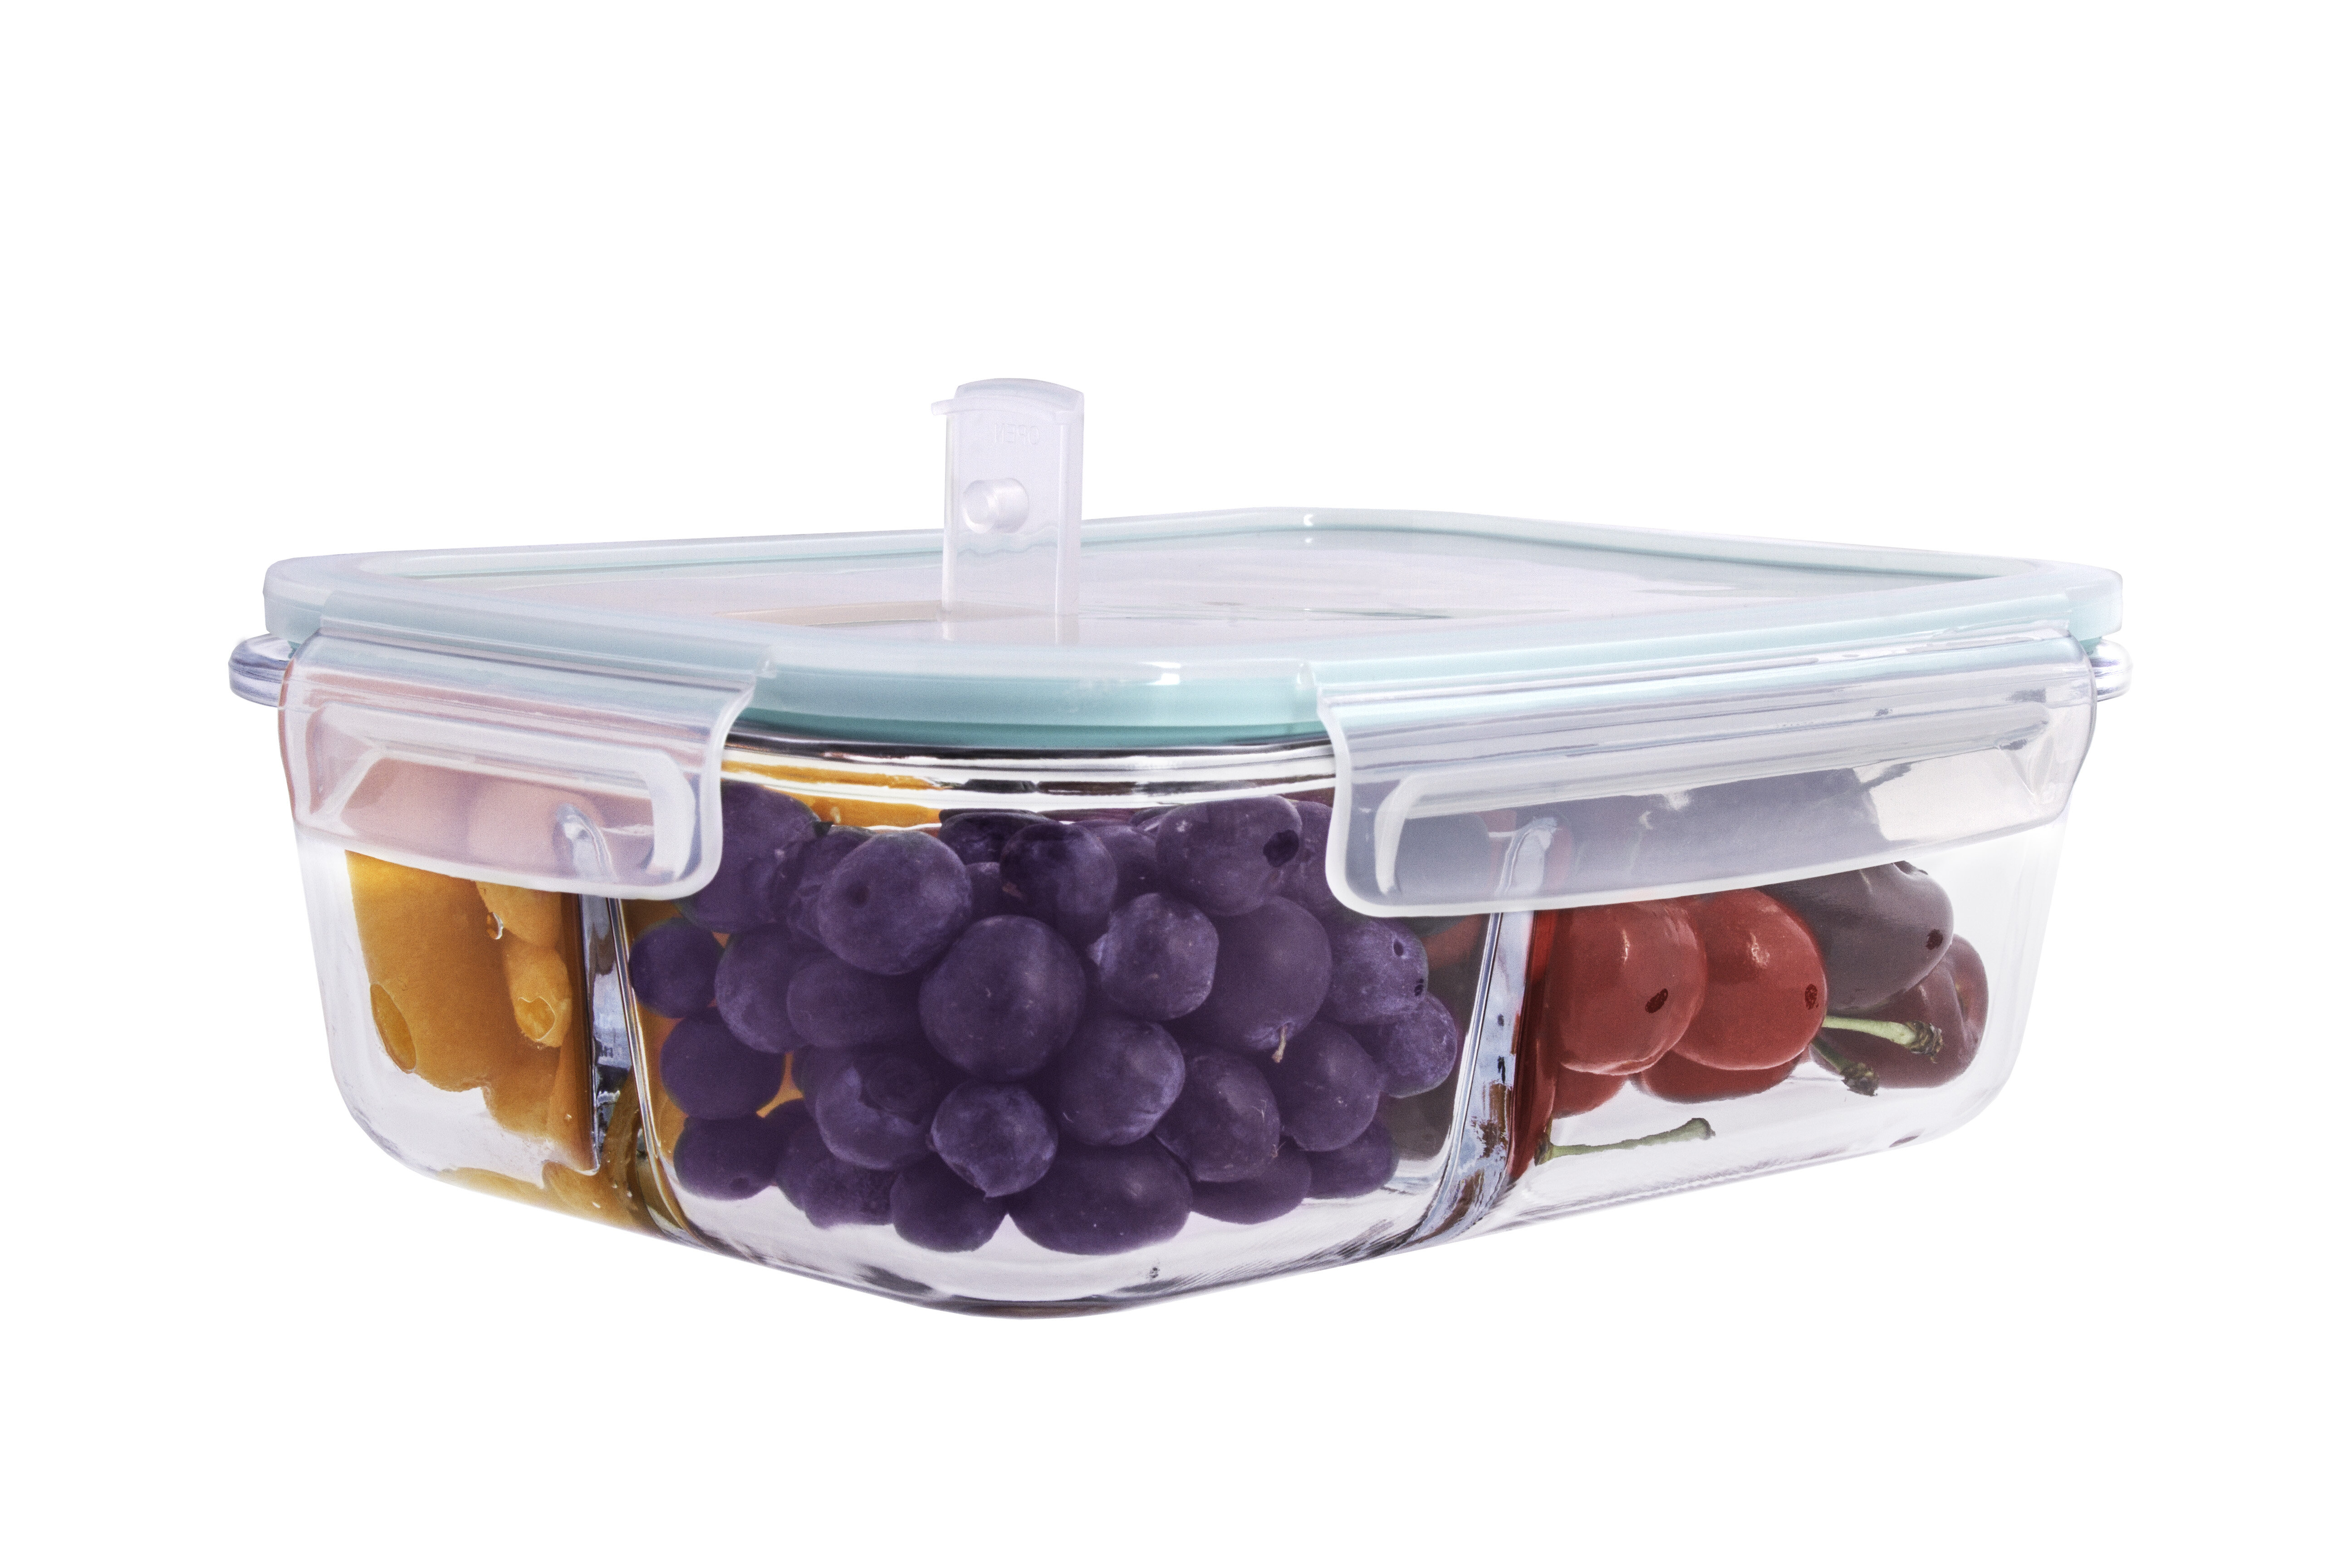 Rebrilliant Modern Glass Meal Prep 35 Oz Food Storage Container